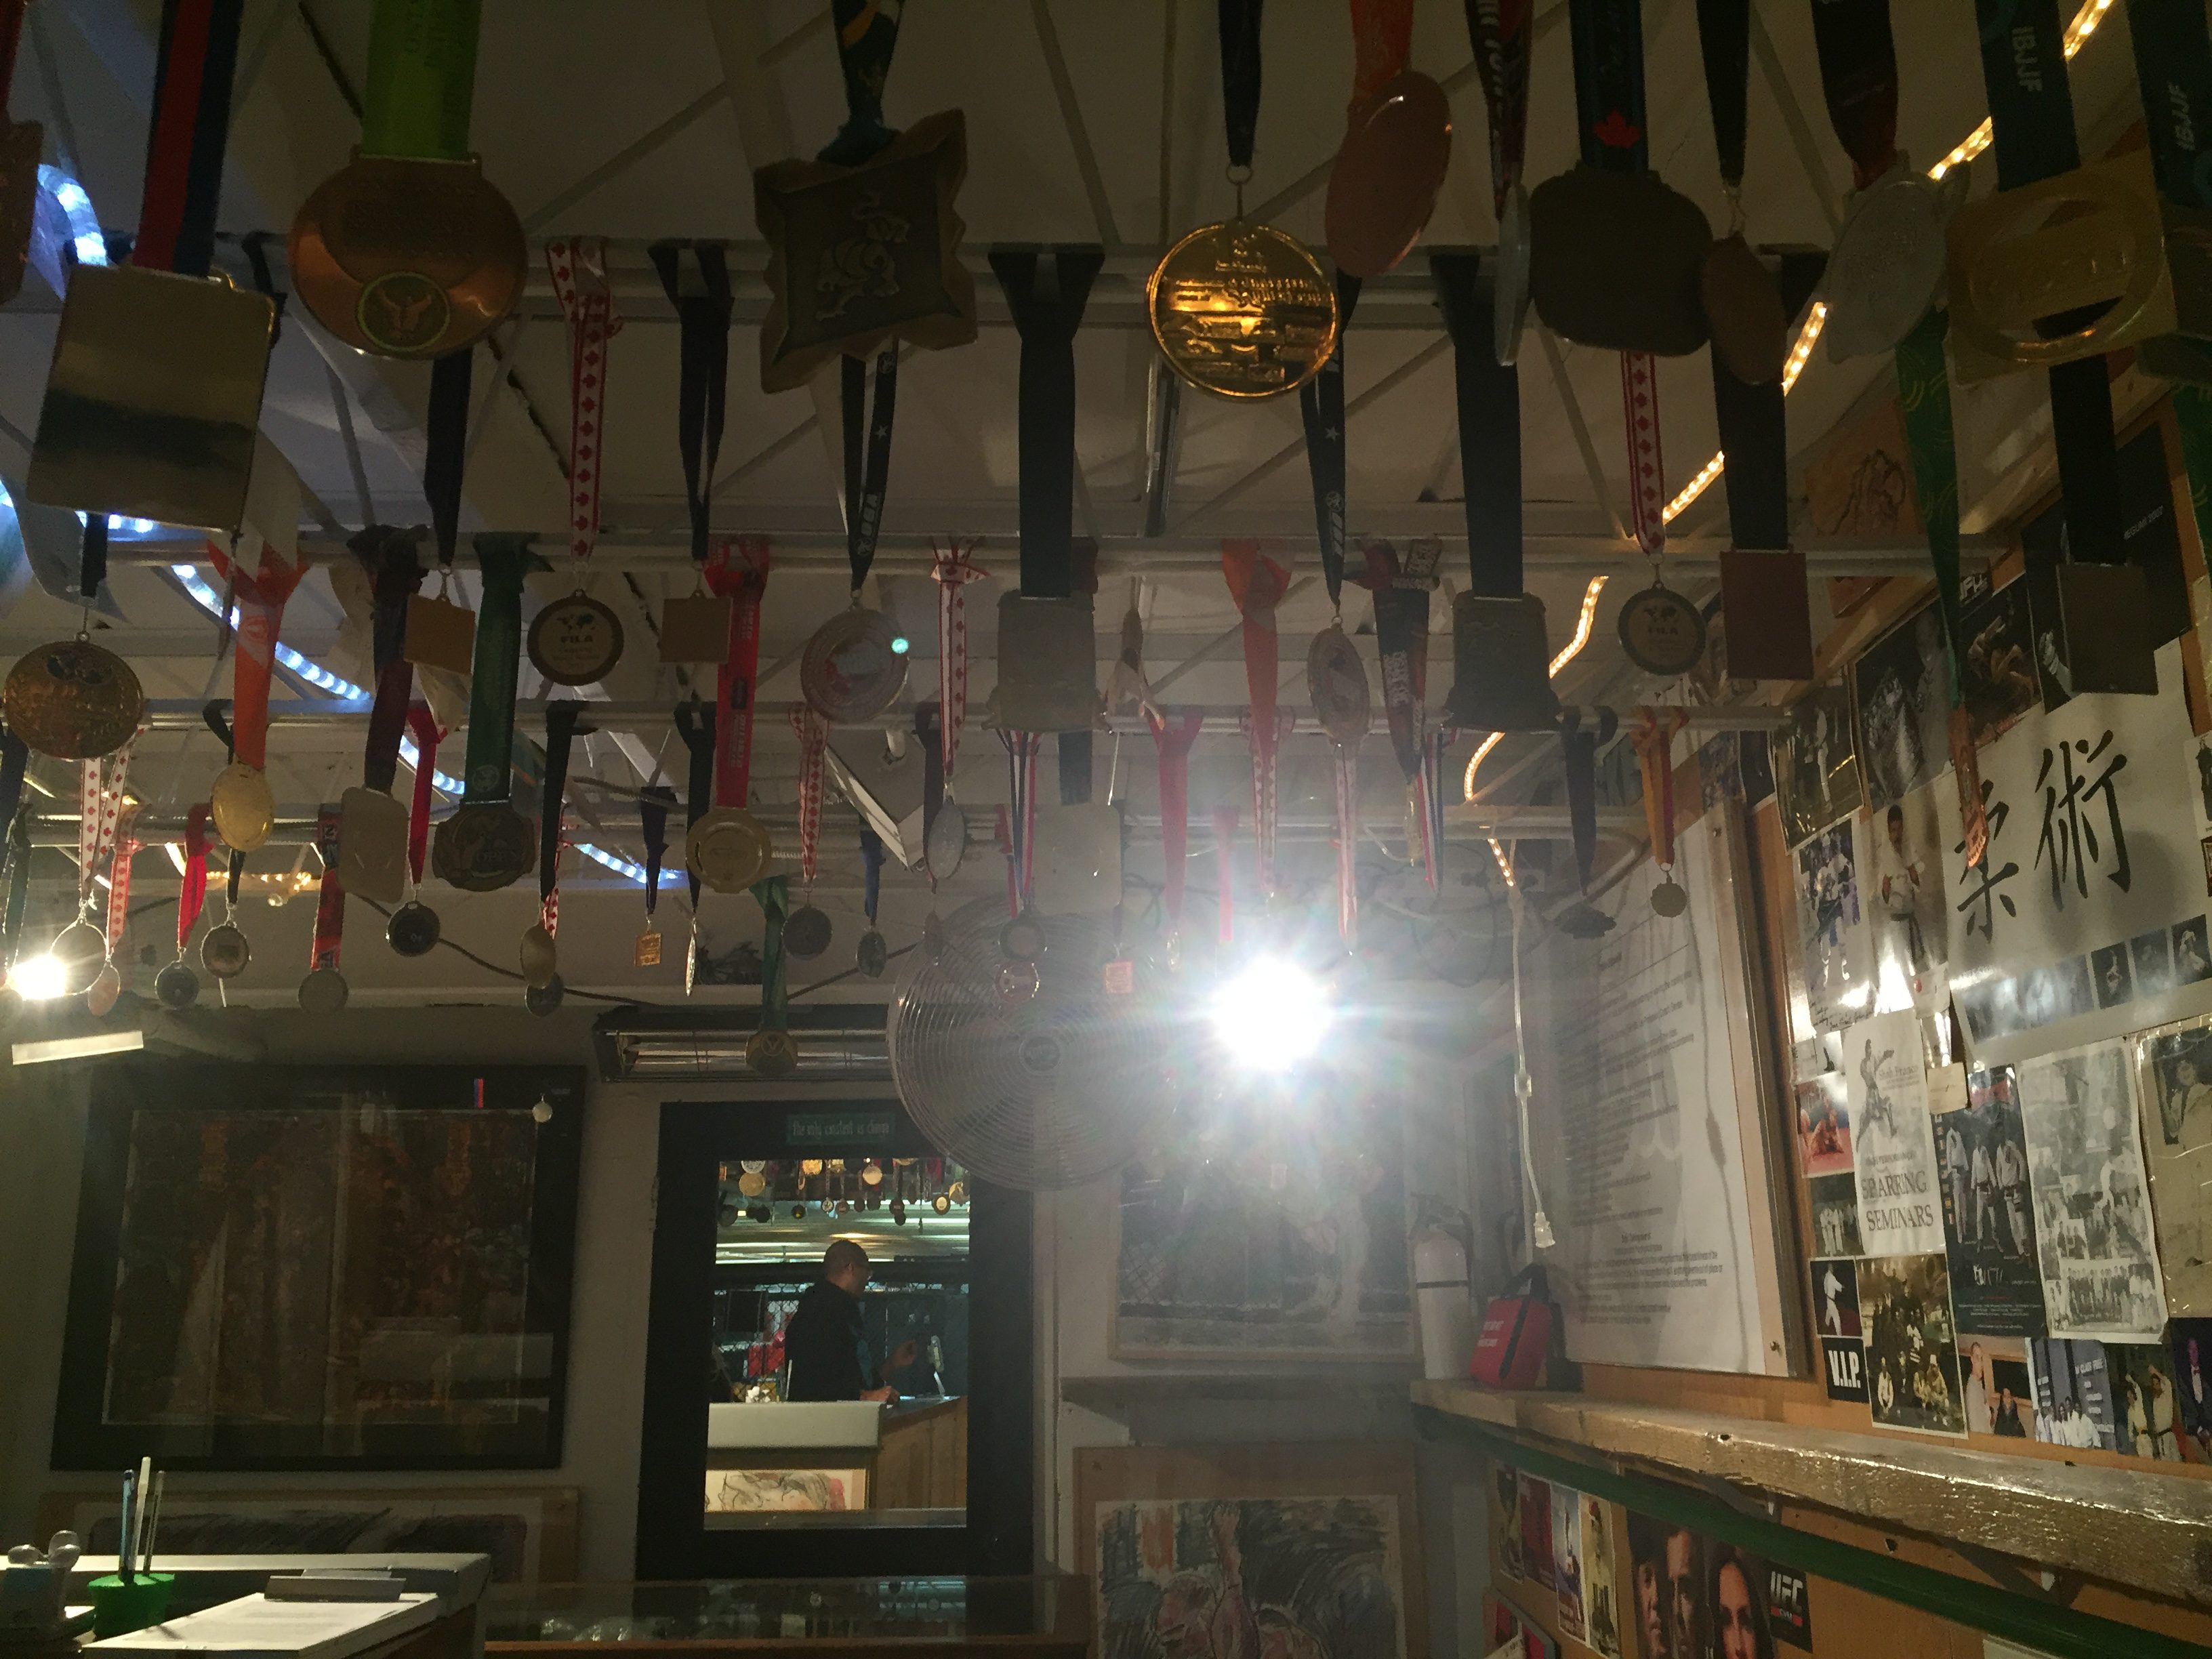 Room with various rows of medals hanging from ceiling.